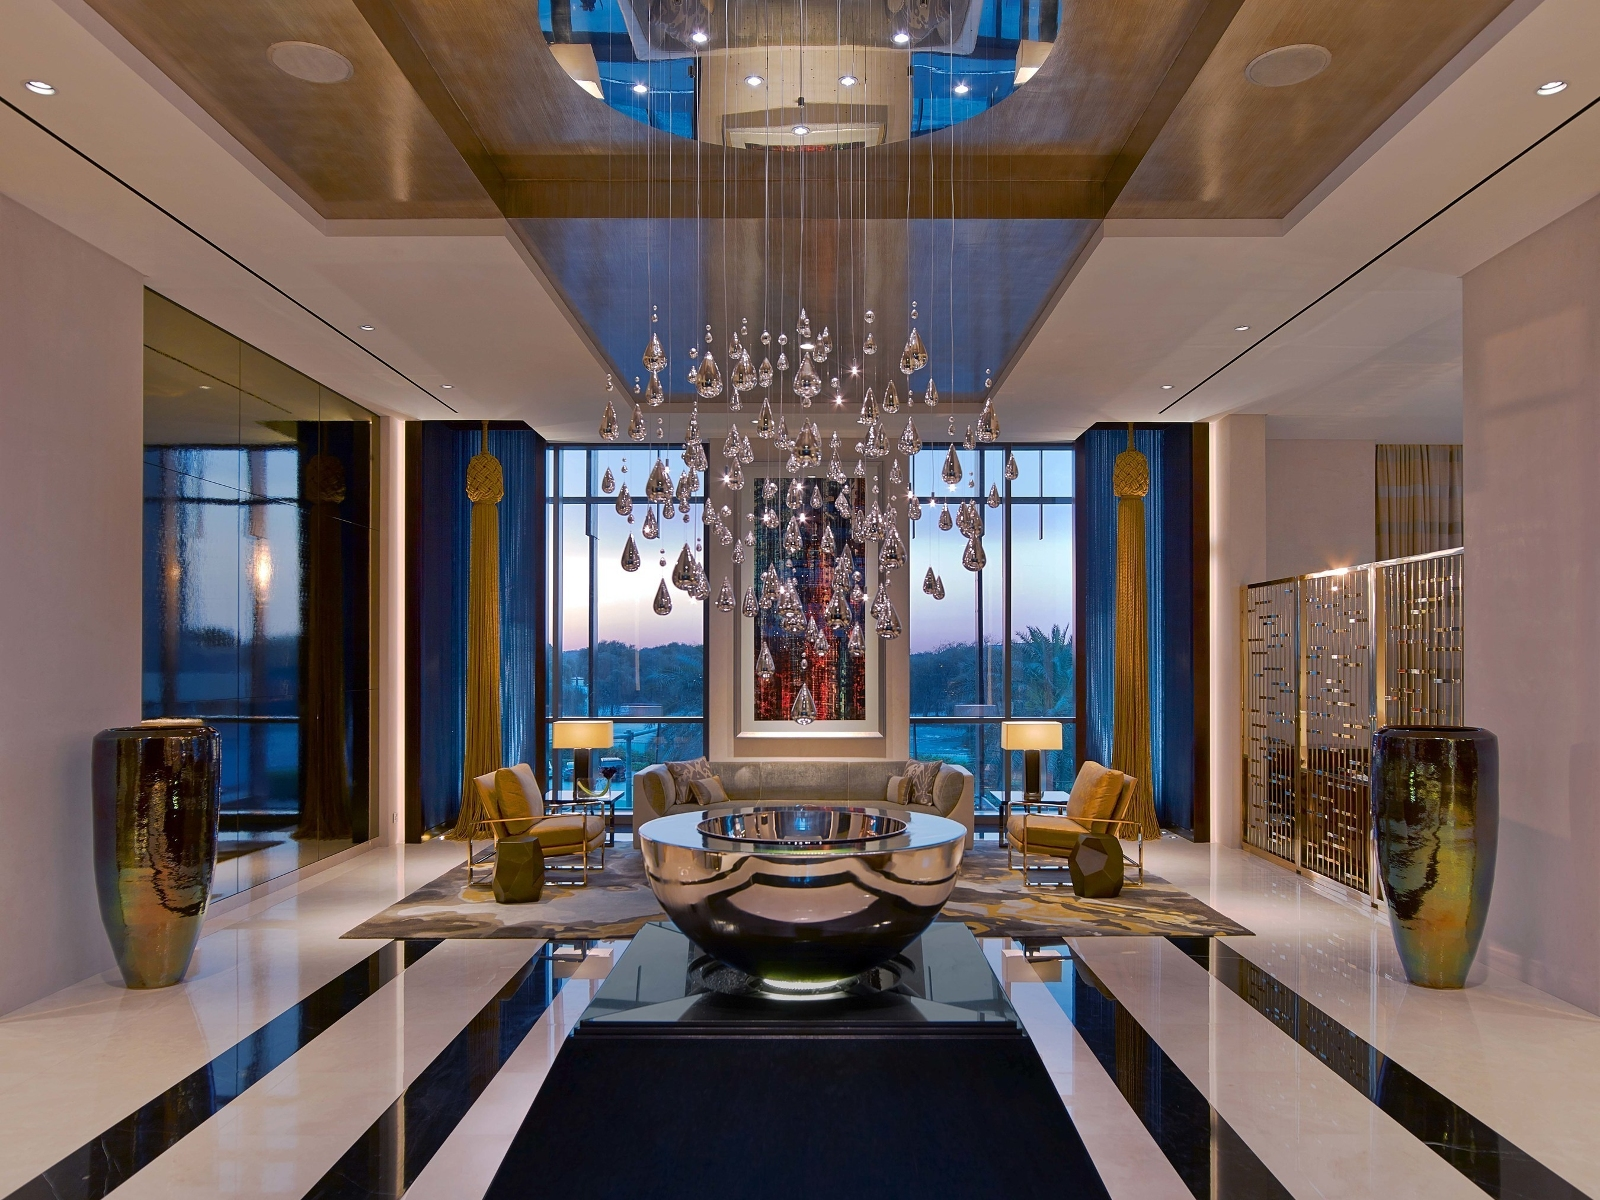 Luxury hotel archives luxury pr for Most expensive hotel in dubai 2016